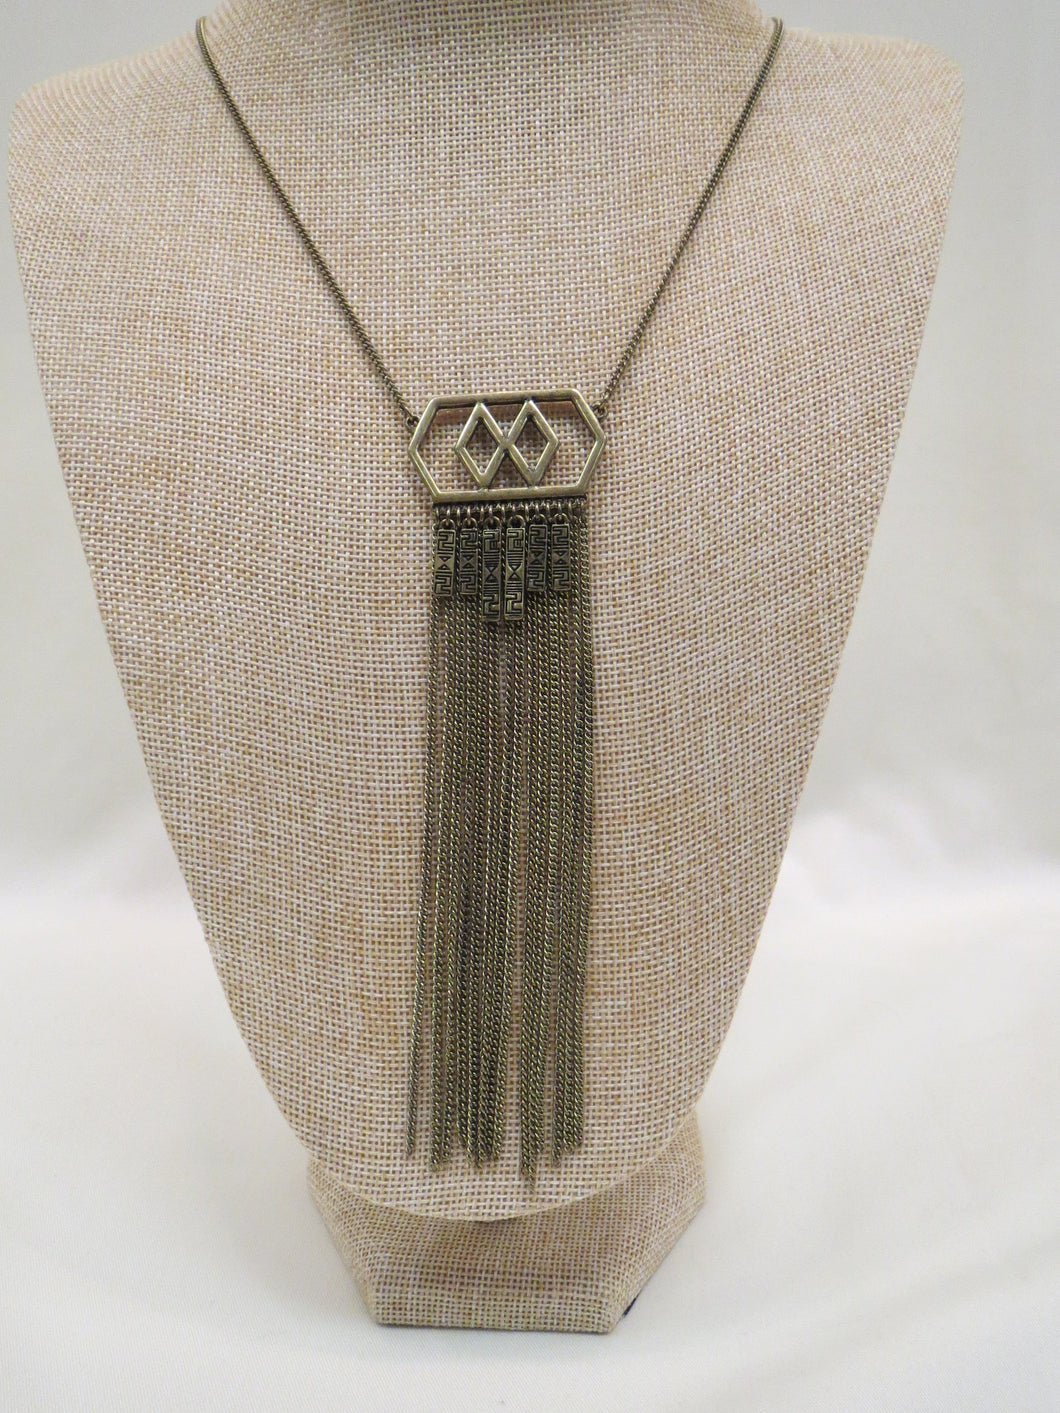 ADO Aztec Gold Pendant Necklace Long | All Dec'd Out